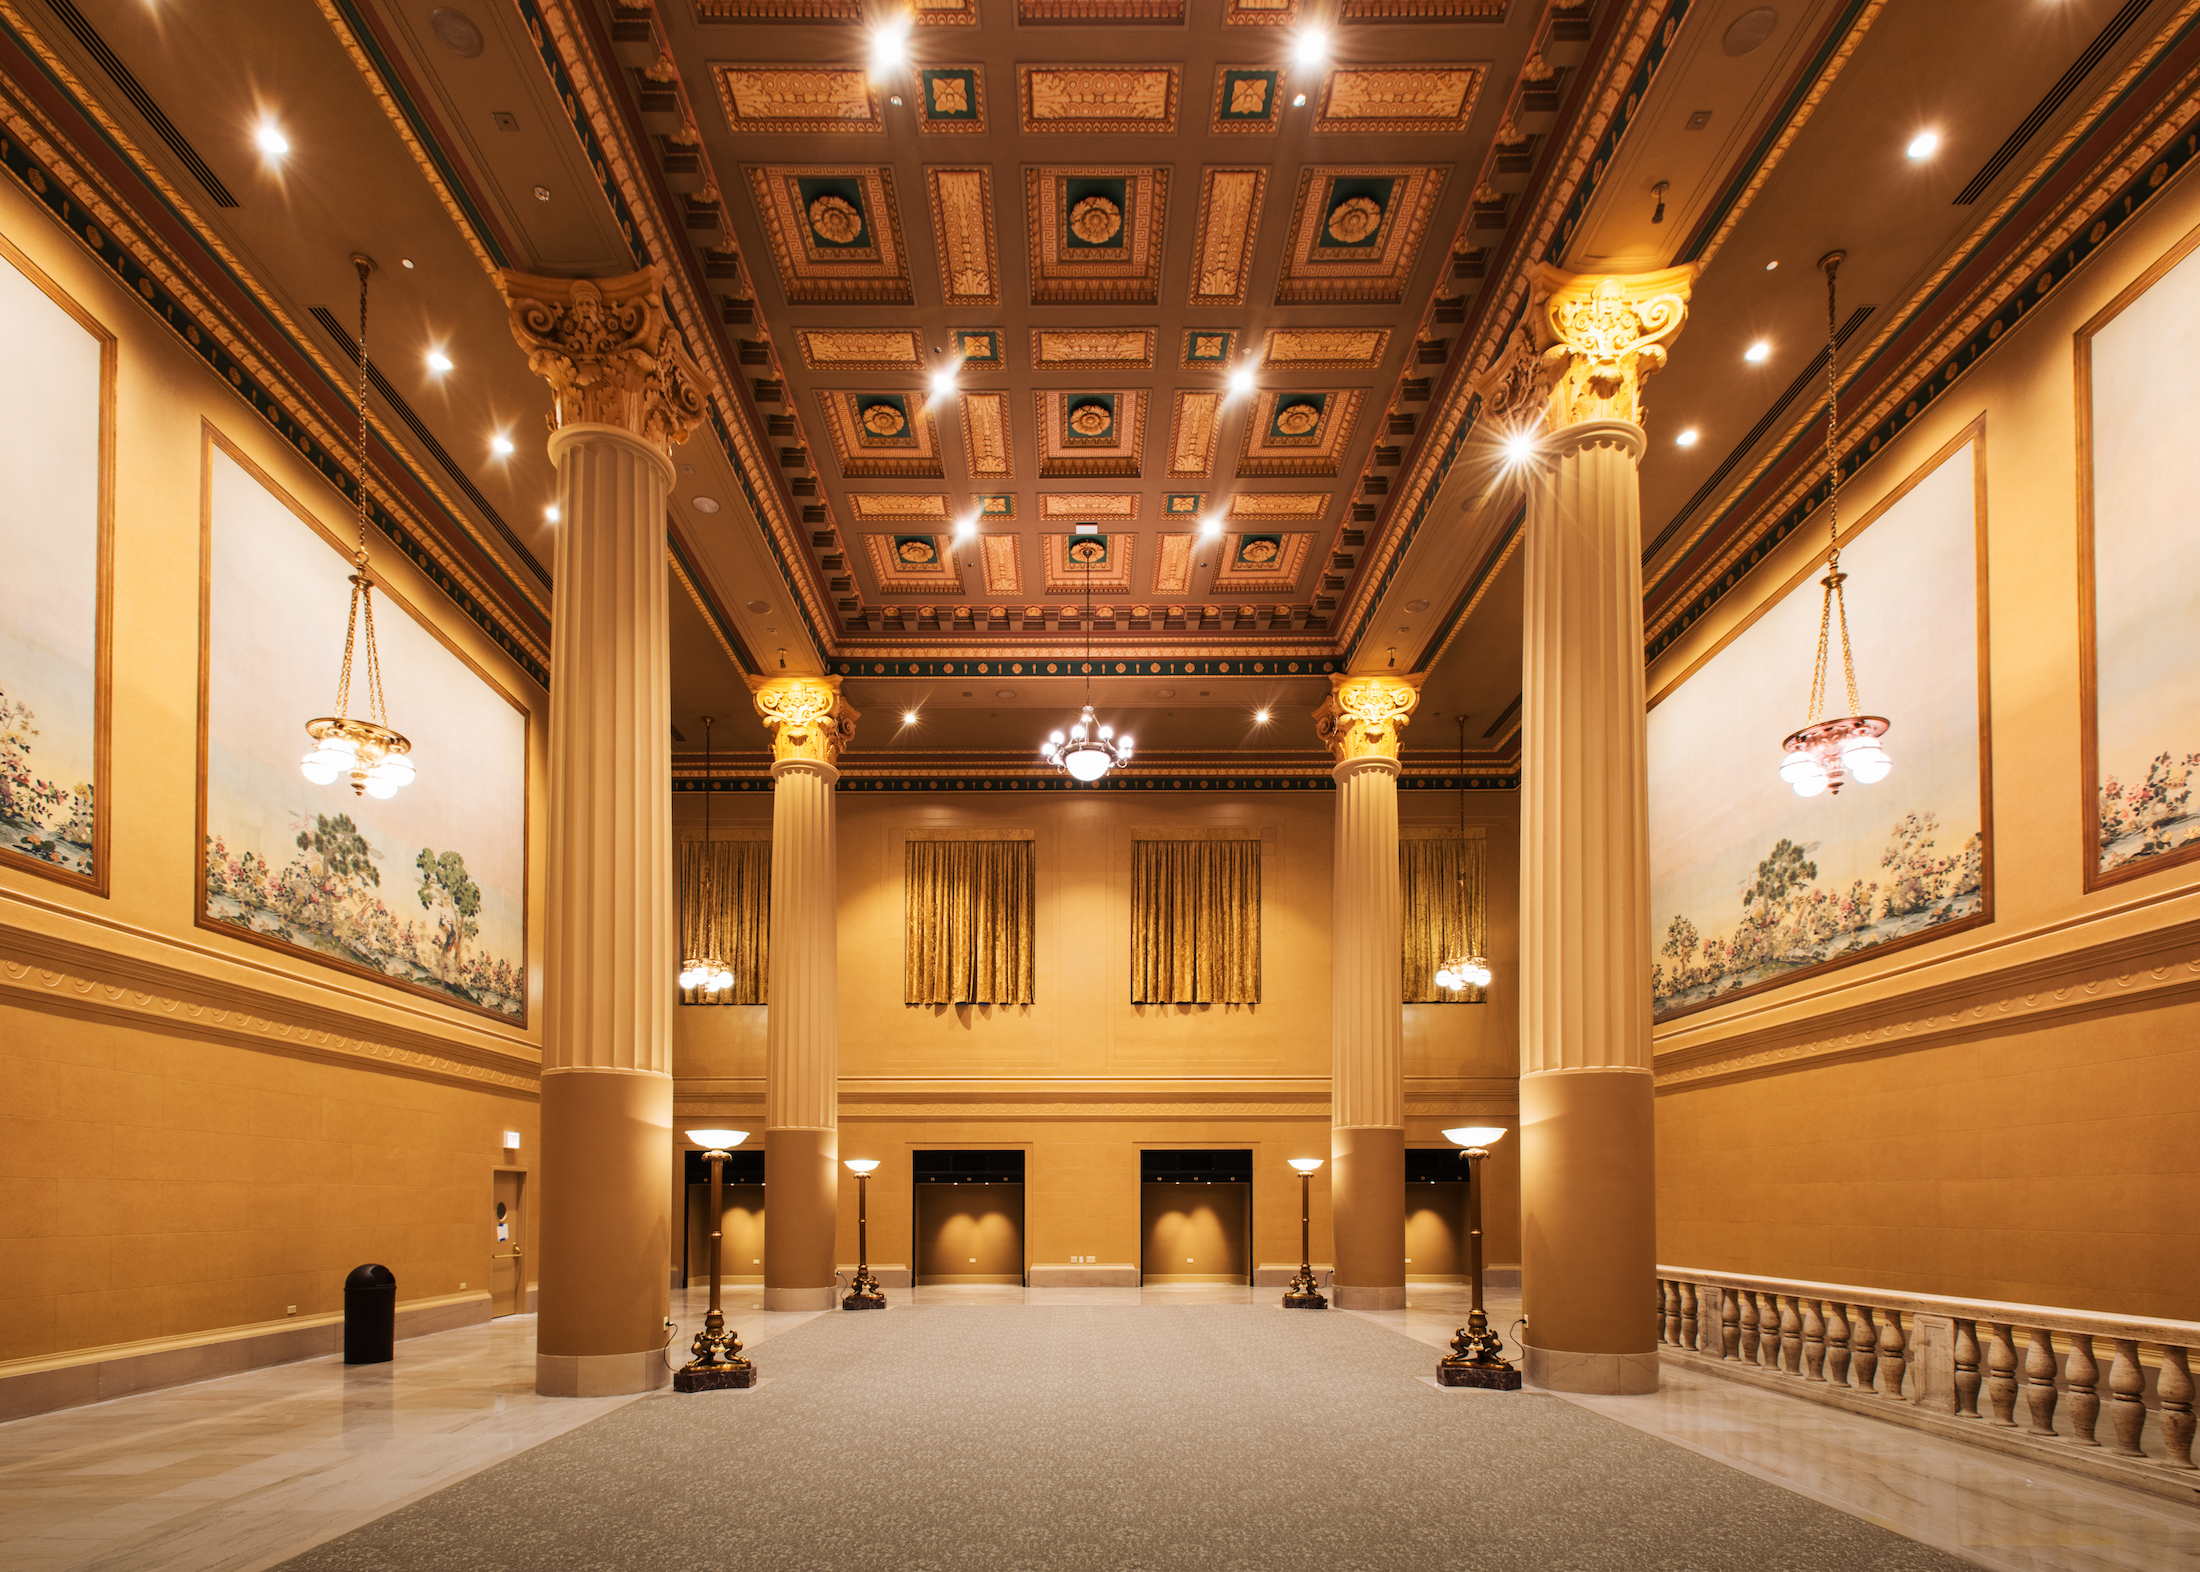 The interior of an event venue. The walls are yellow and the ceiling is wooden with a carved design. There are columns.